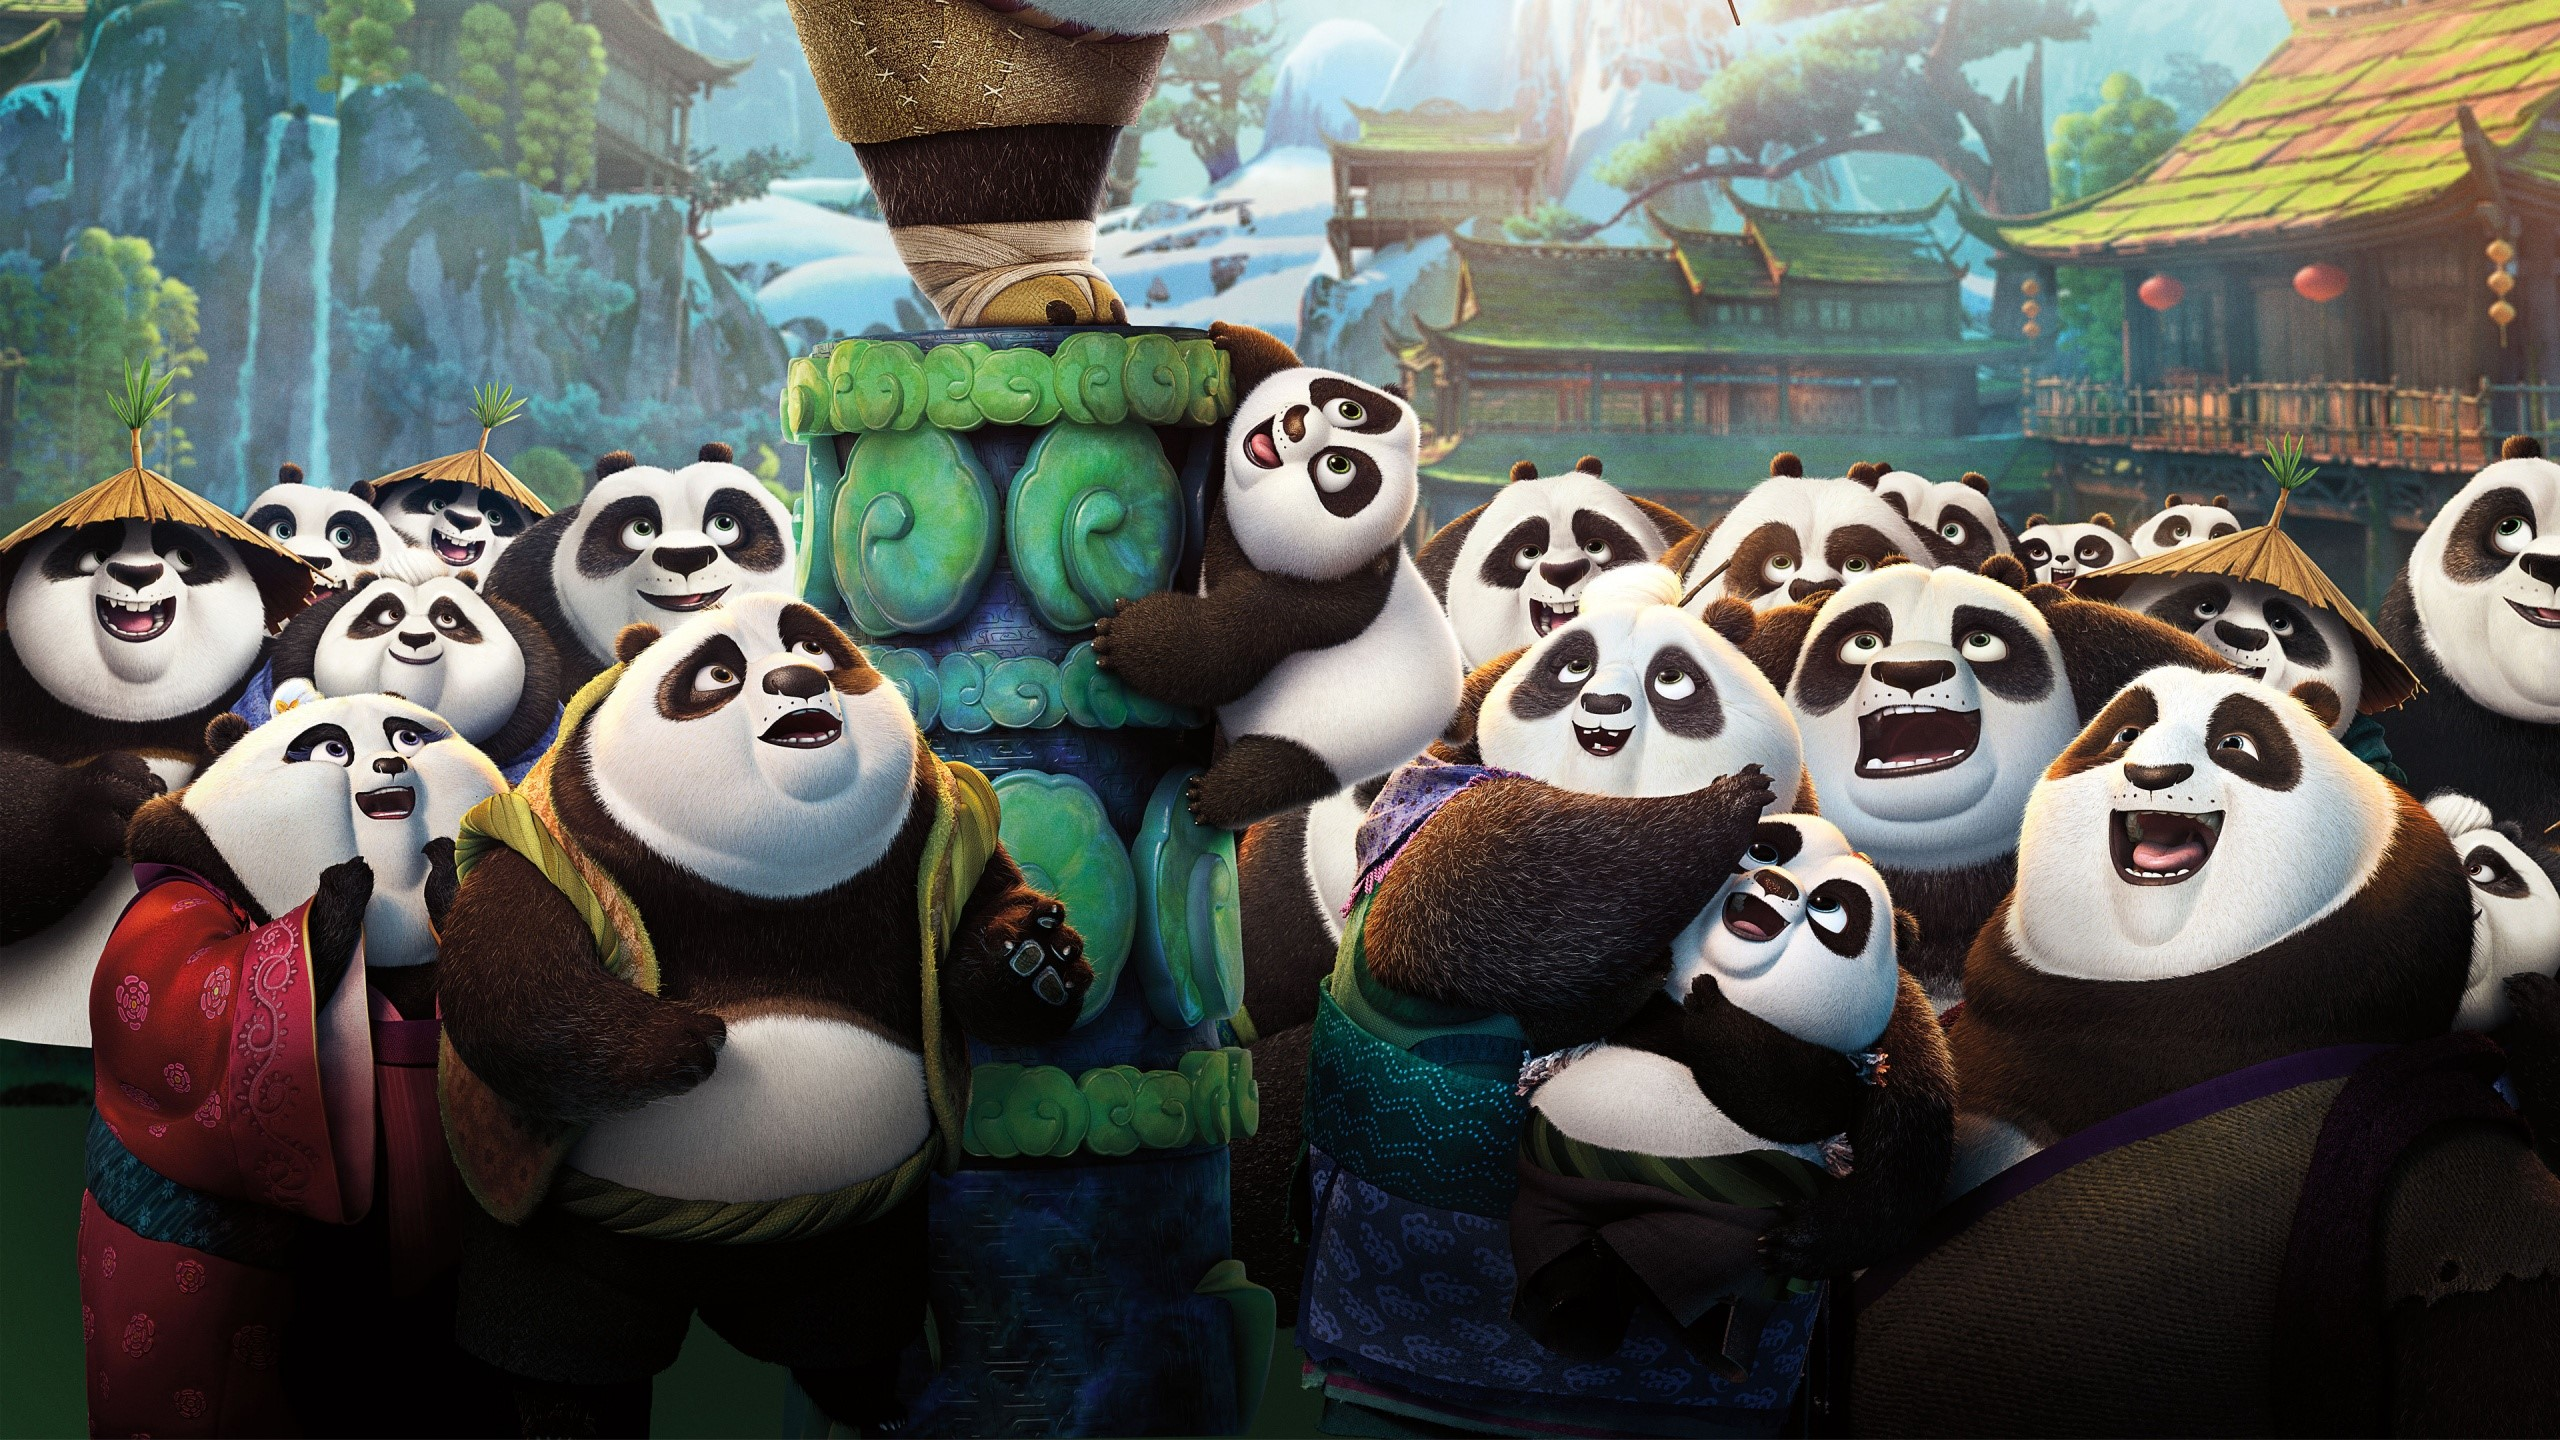 Wallpaper All pandas of Kung fu Panda 3